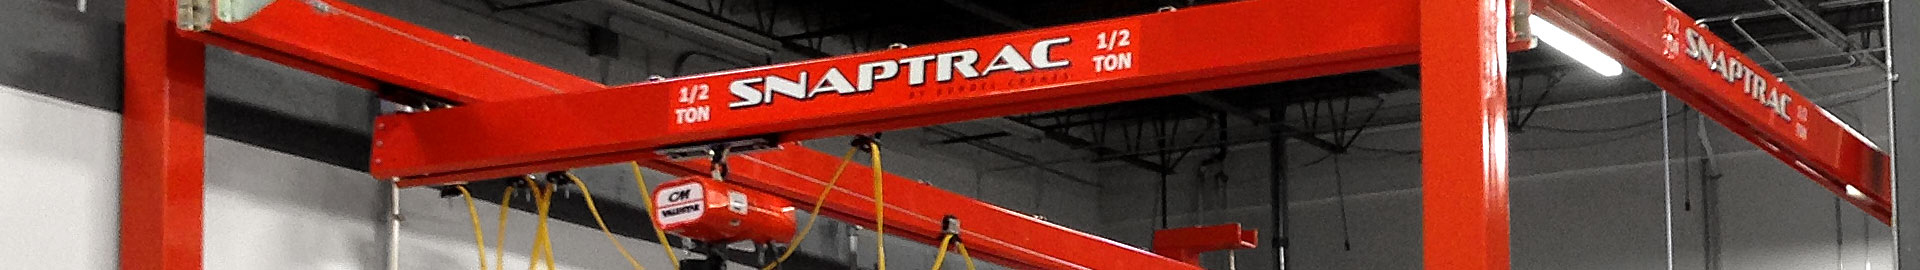 https://snaptrac.com/sites/default/files/revslider/image/Snaptrac-Cranes-Banner-Kundel-Inc.jpg